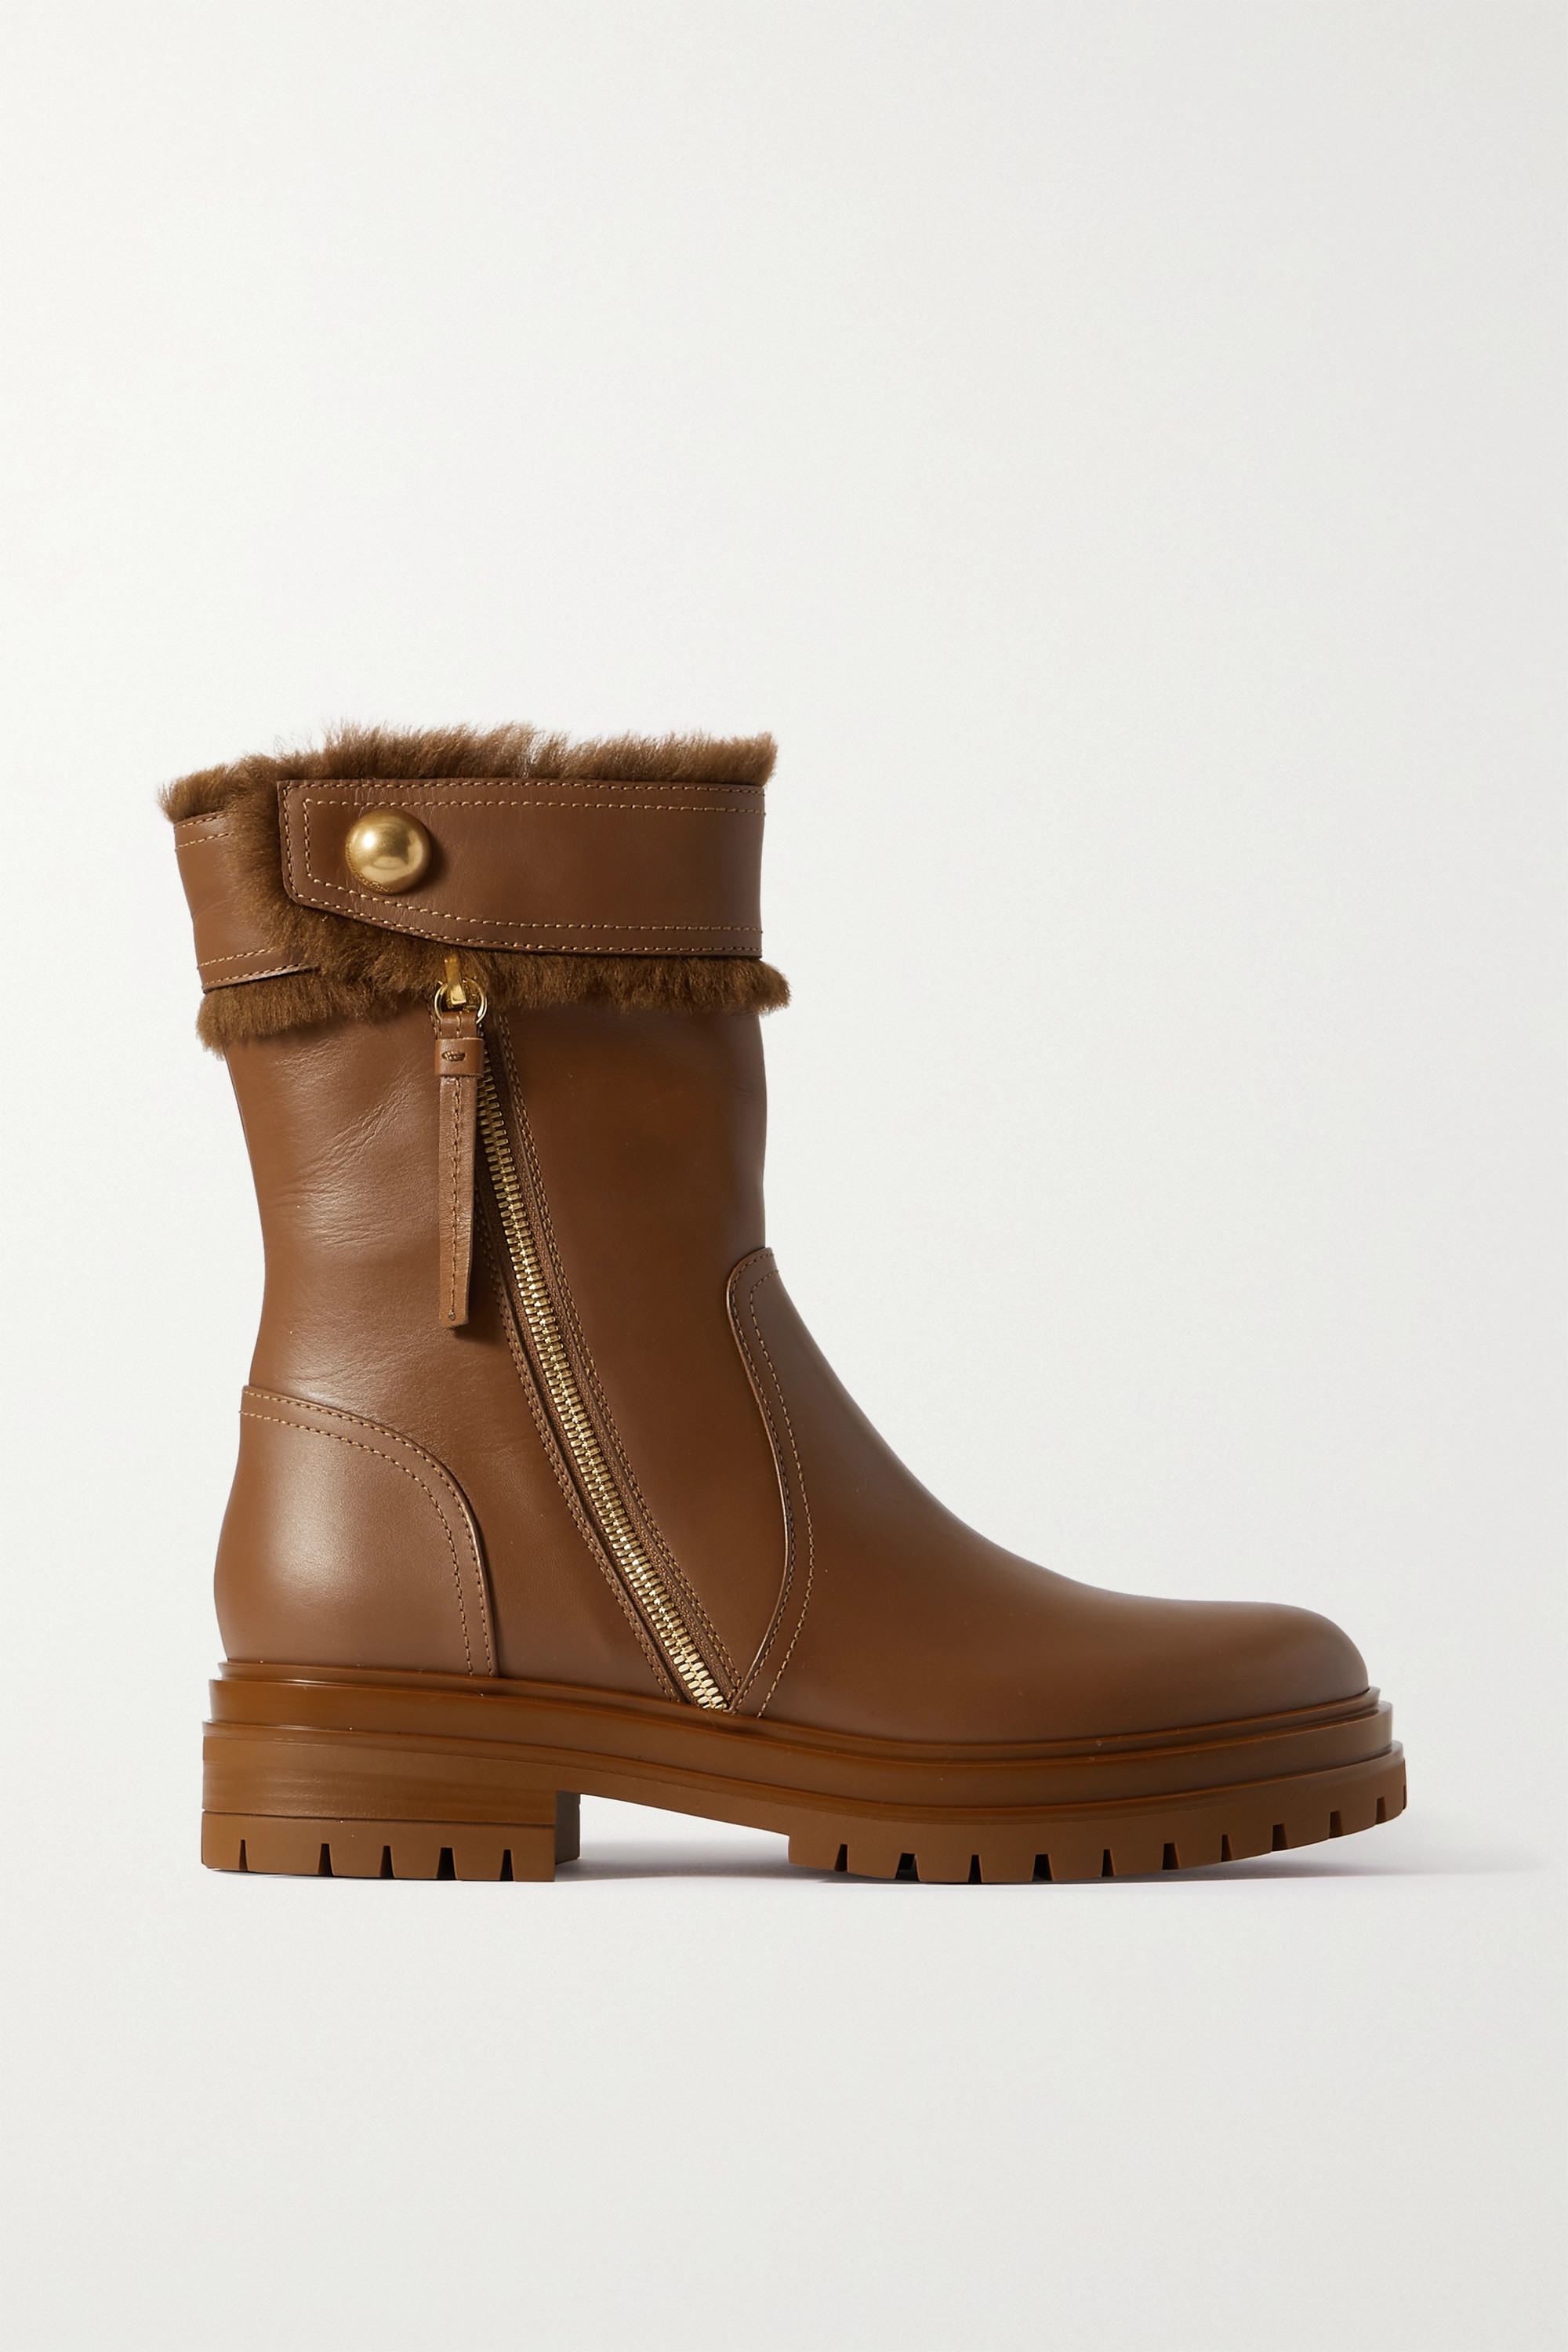 Gianvito Rossi - Montreal shearling-trimmed leather ankle boots